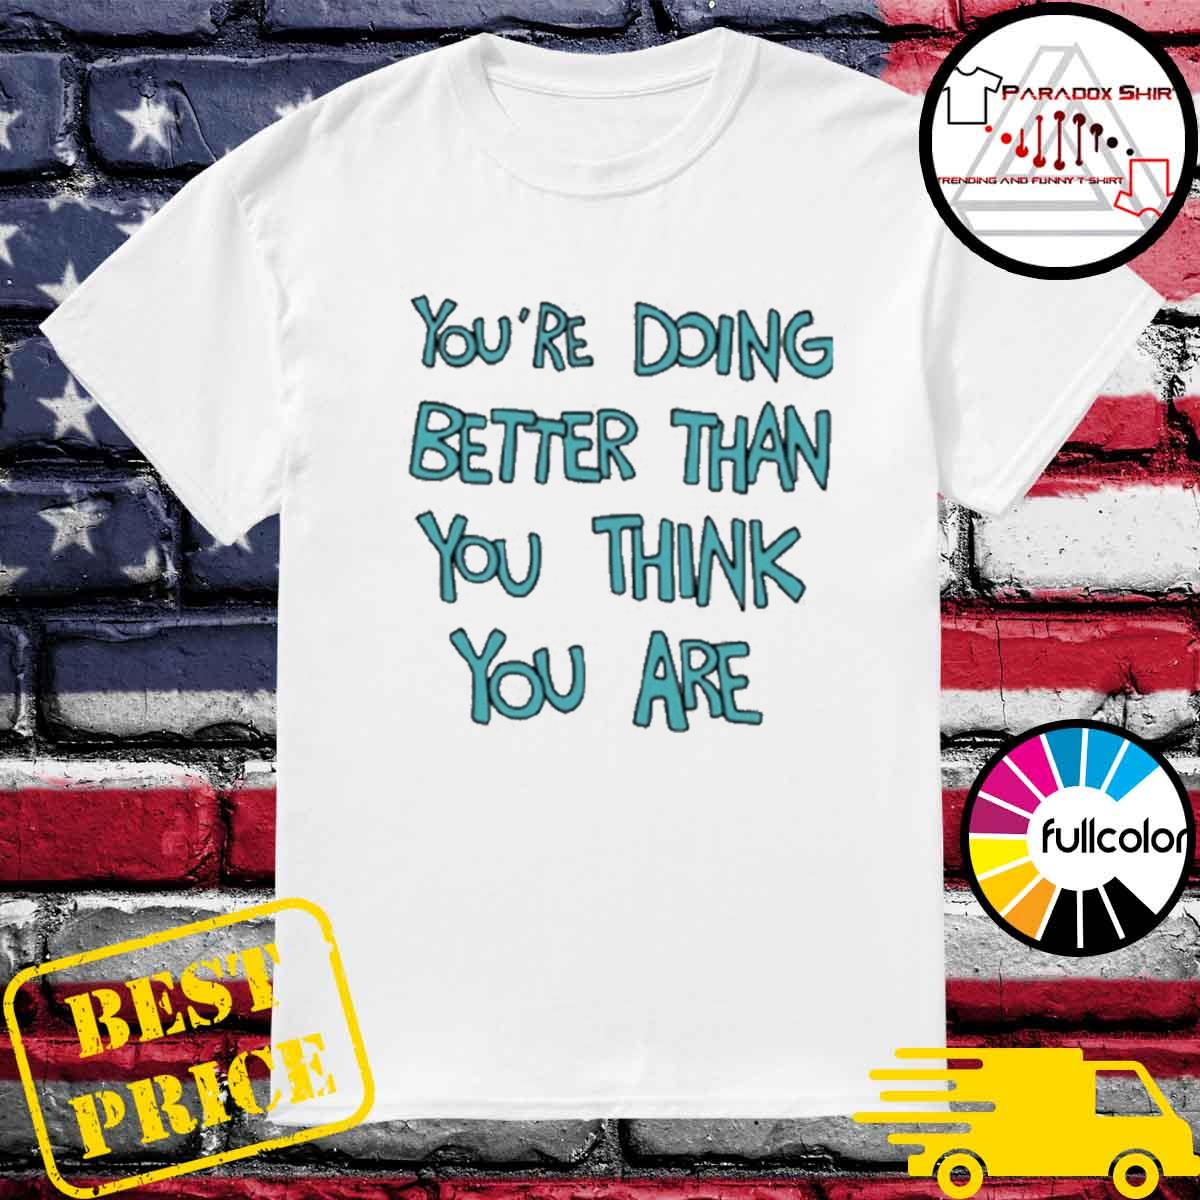 You're doing better than you think you are shirt